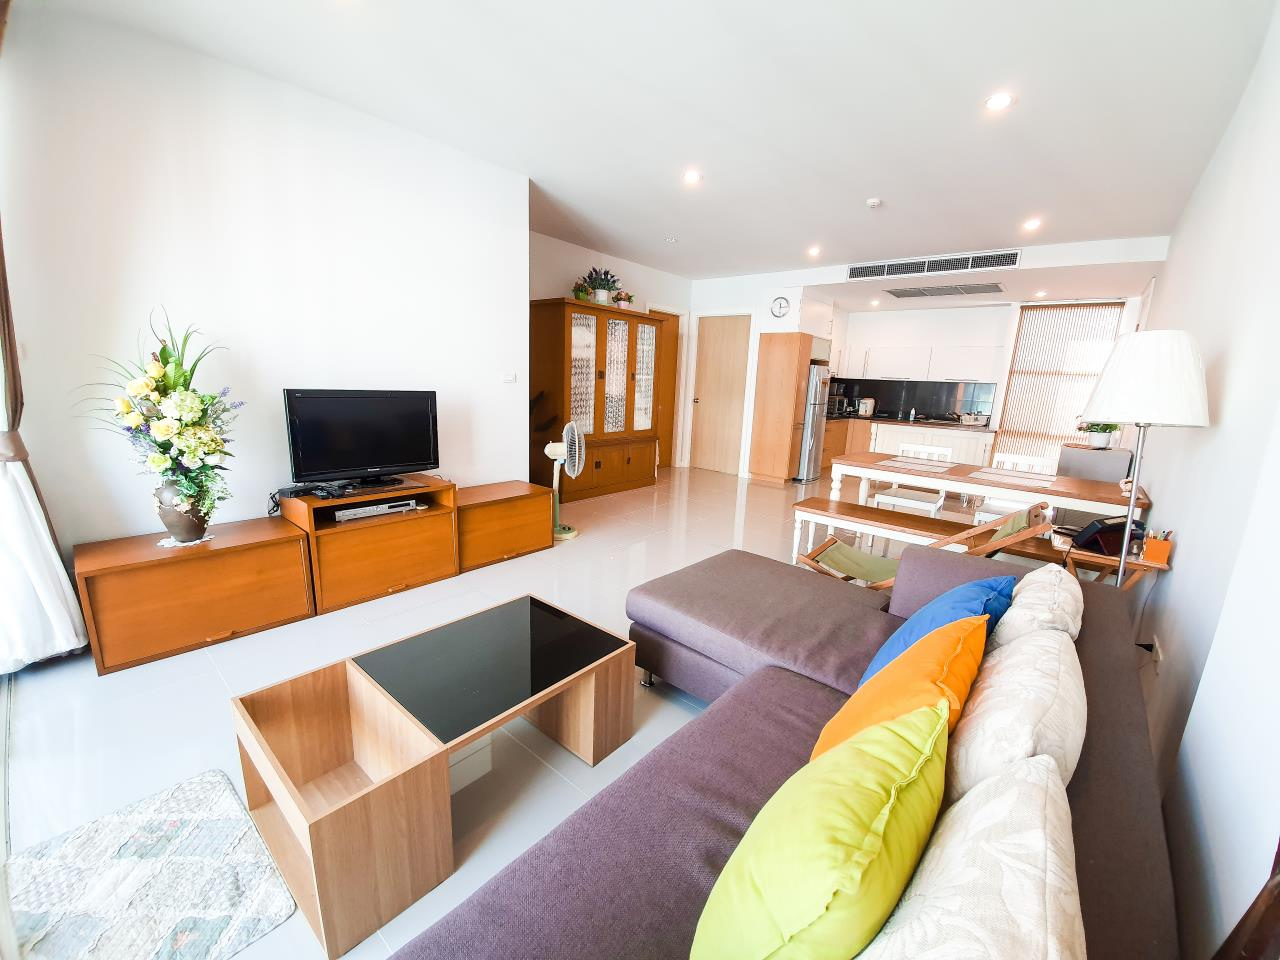 HOME - Real Estate Service Agency's The Breeze Hua Hin / 2 Beds (FOR RENT), เดอะ บรีซ หัวหิน / 2 ห้องนอน (ให้เช่า) T008 1